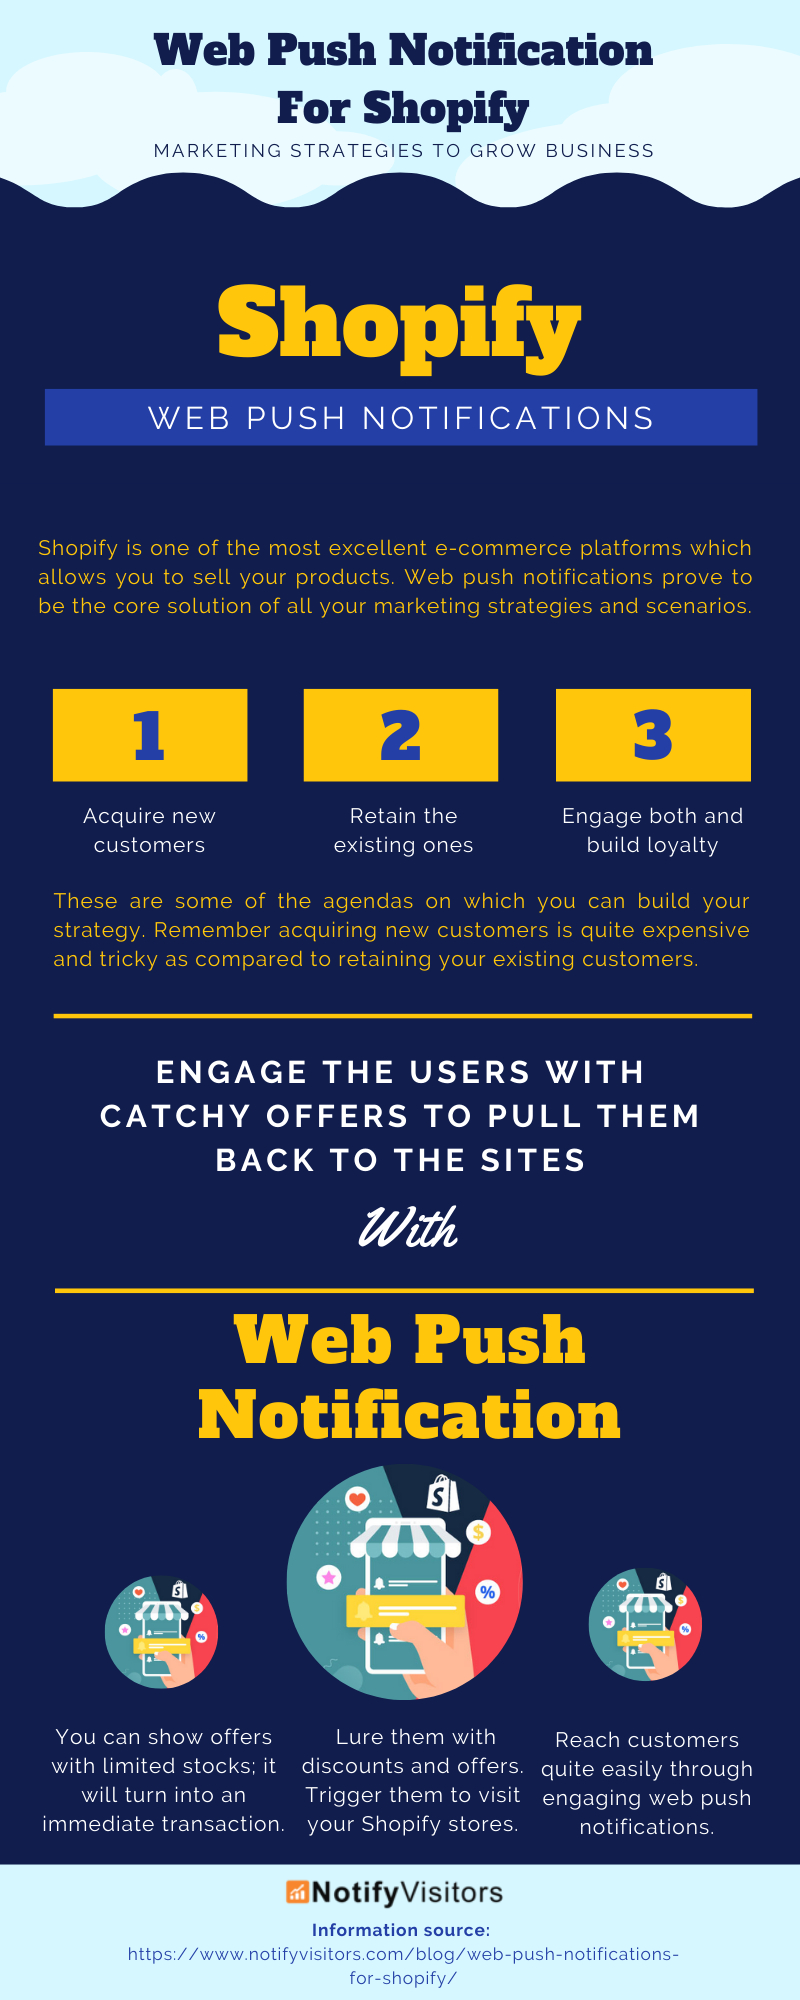 Web Push Notifications for Shopify